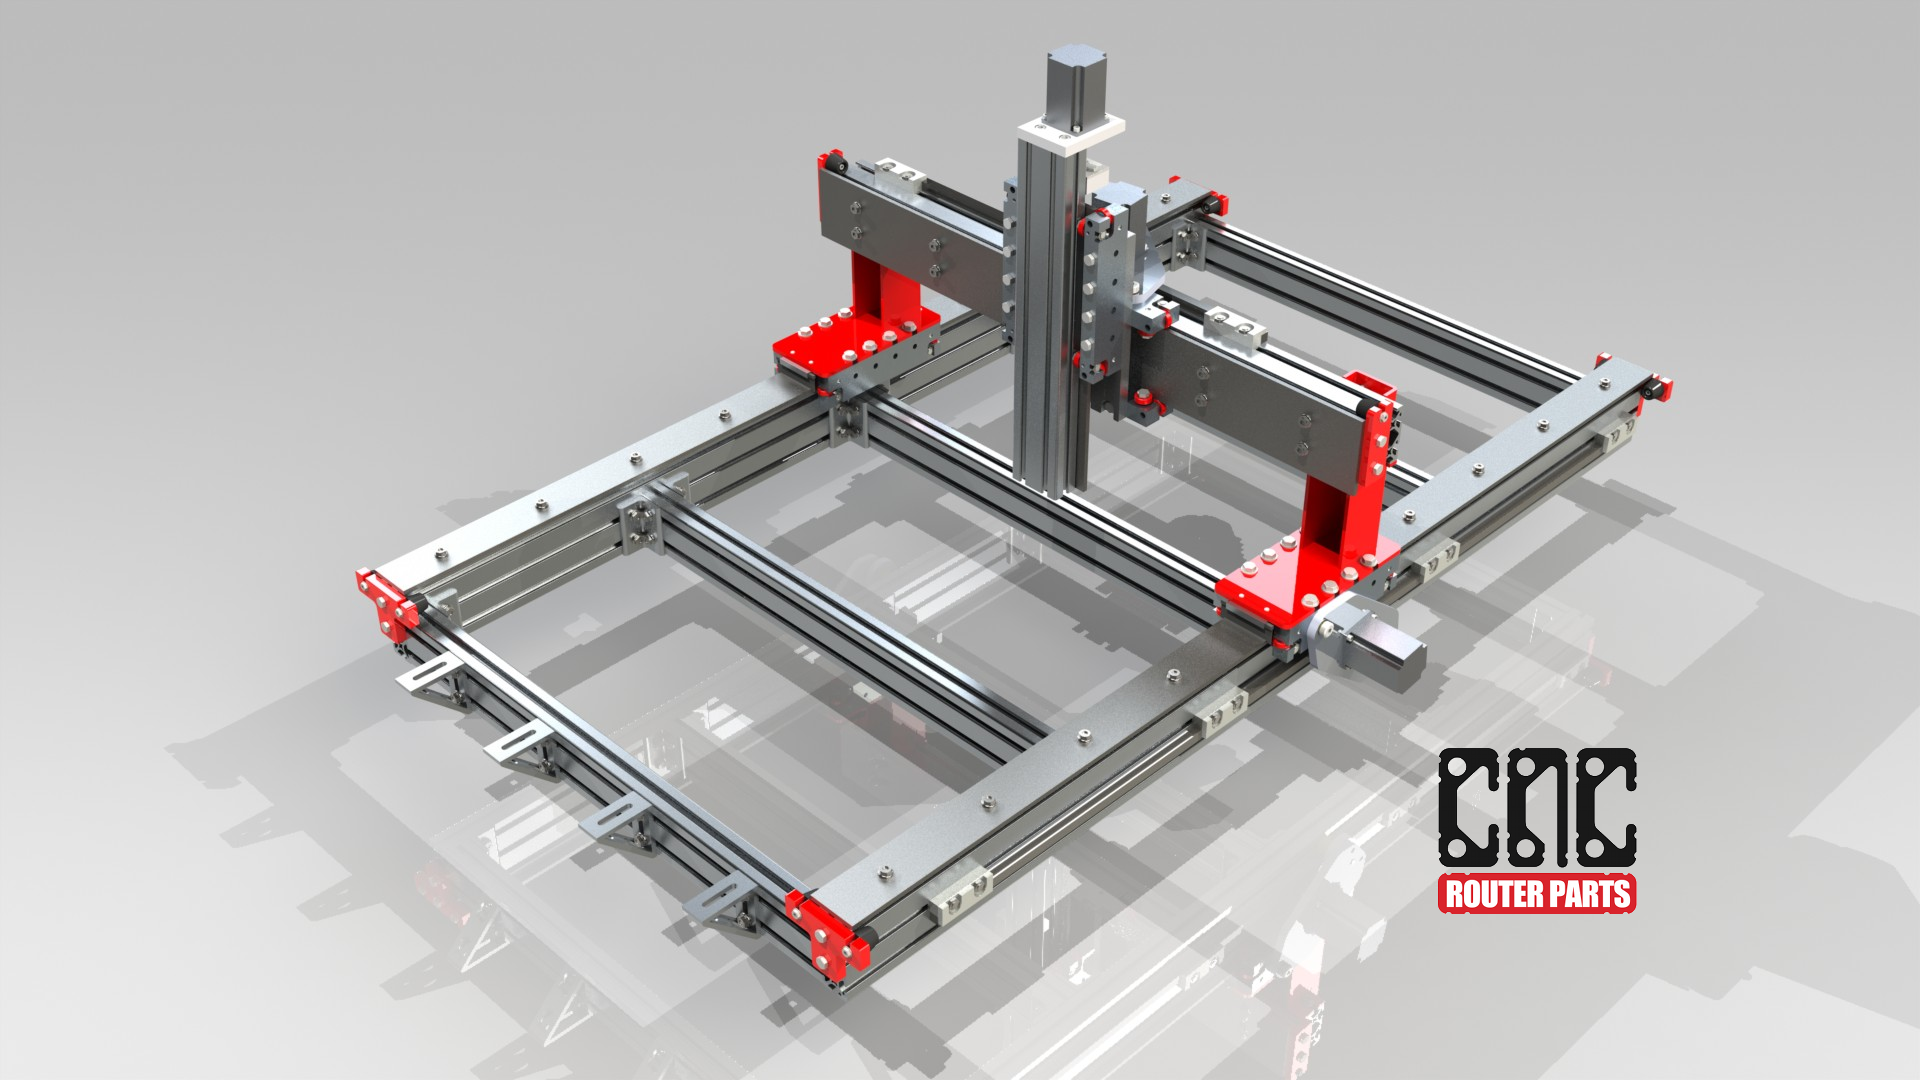 Crp2448 2 X 4 Cnc Router Kit New Cnc In 2019 Cnc